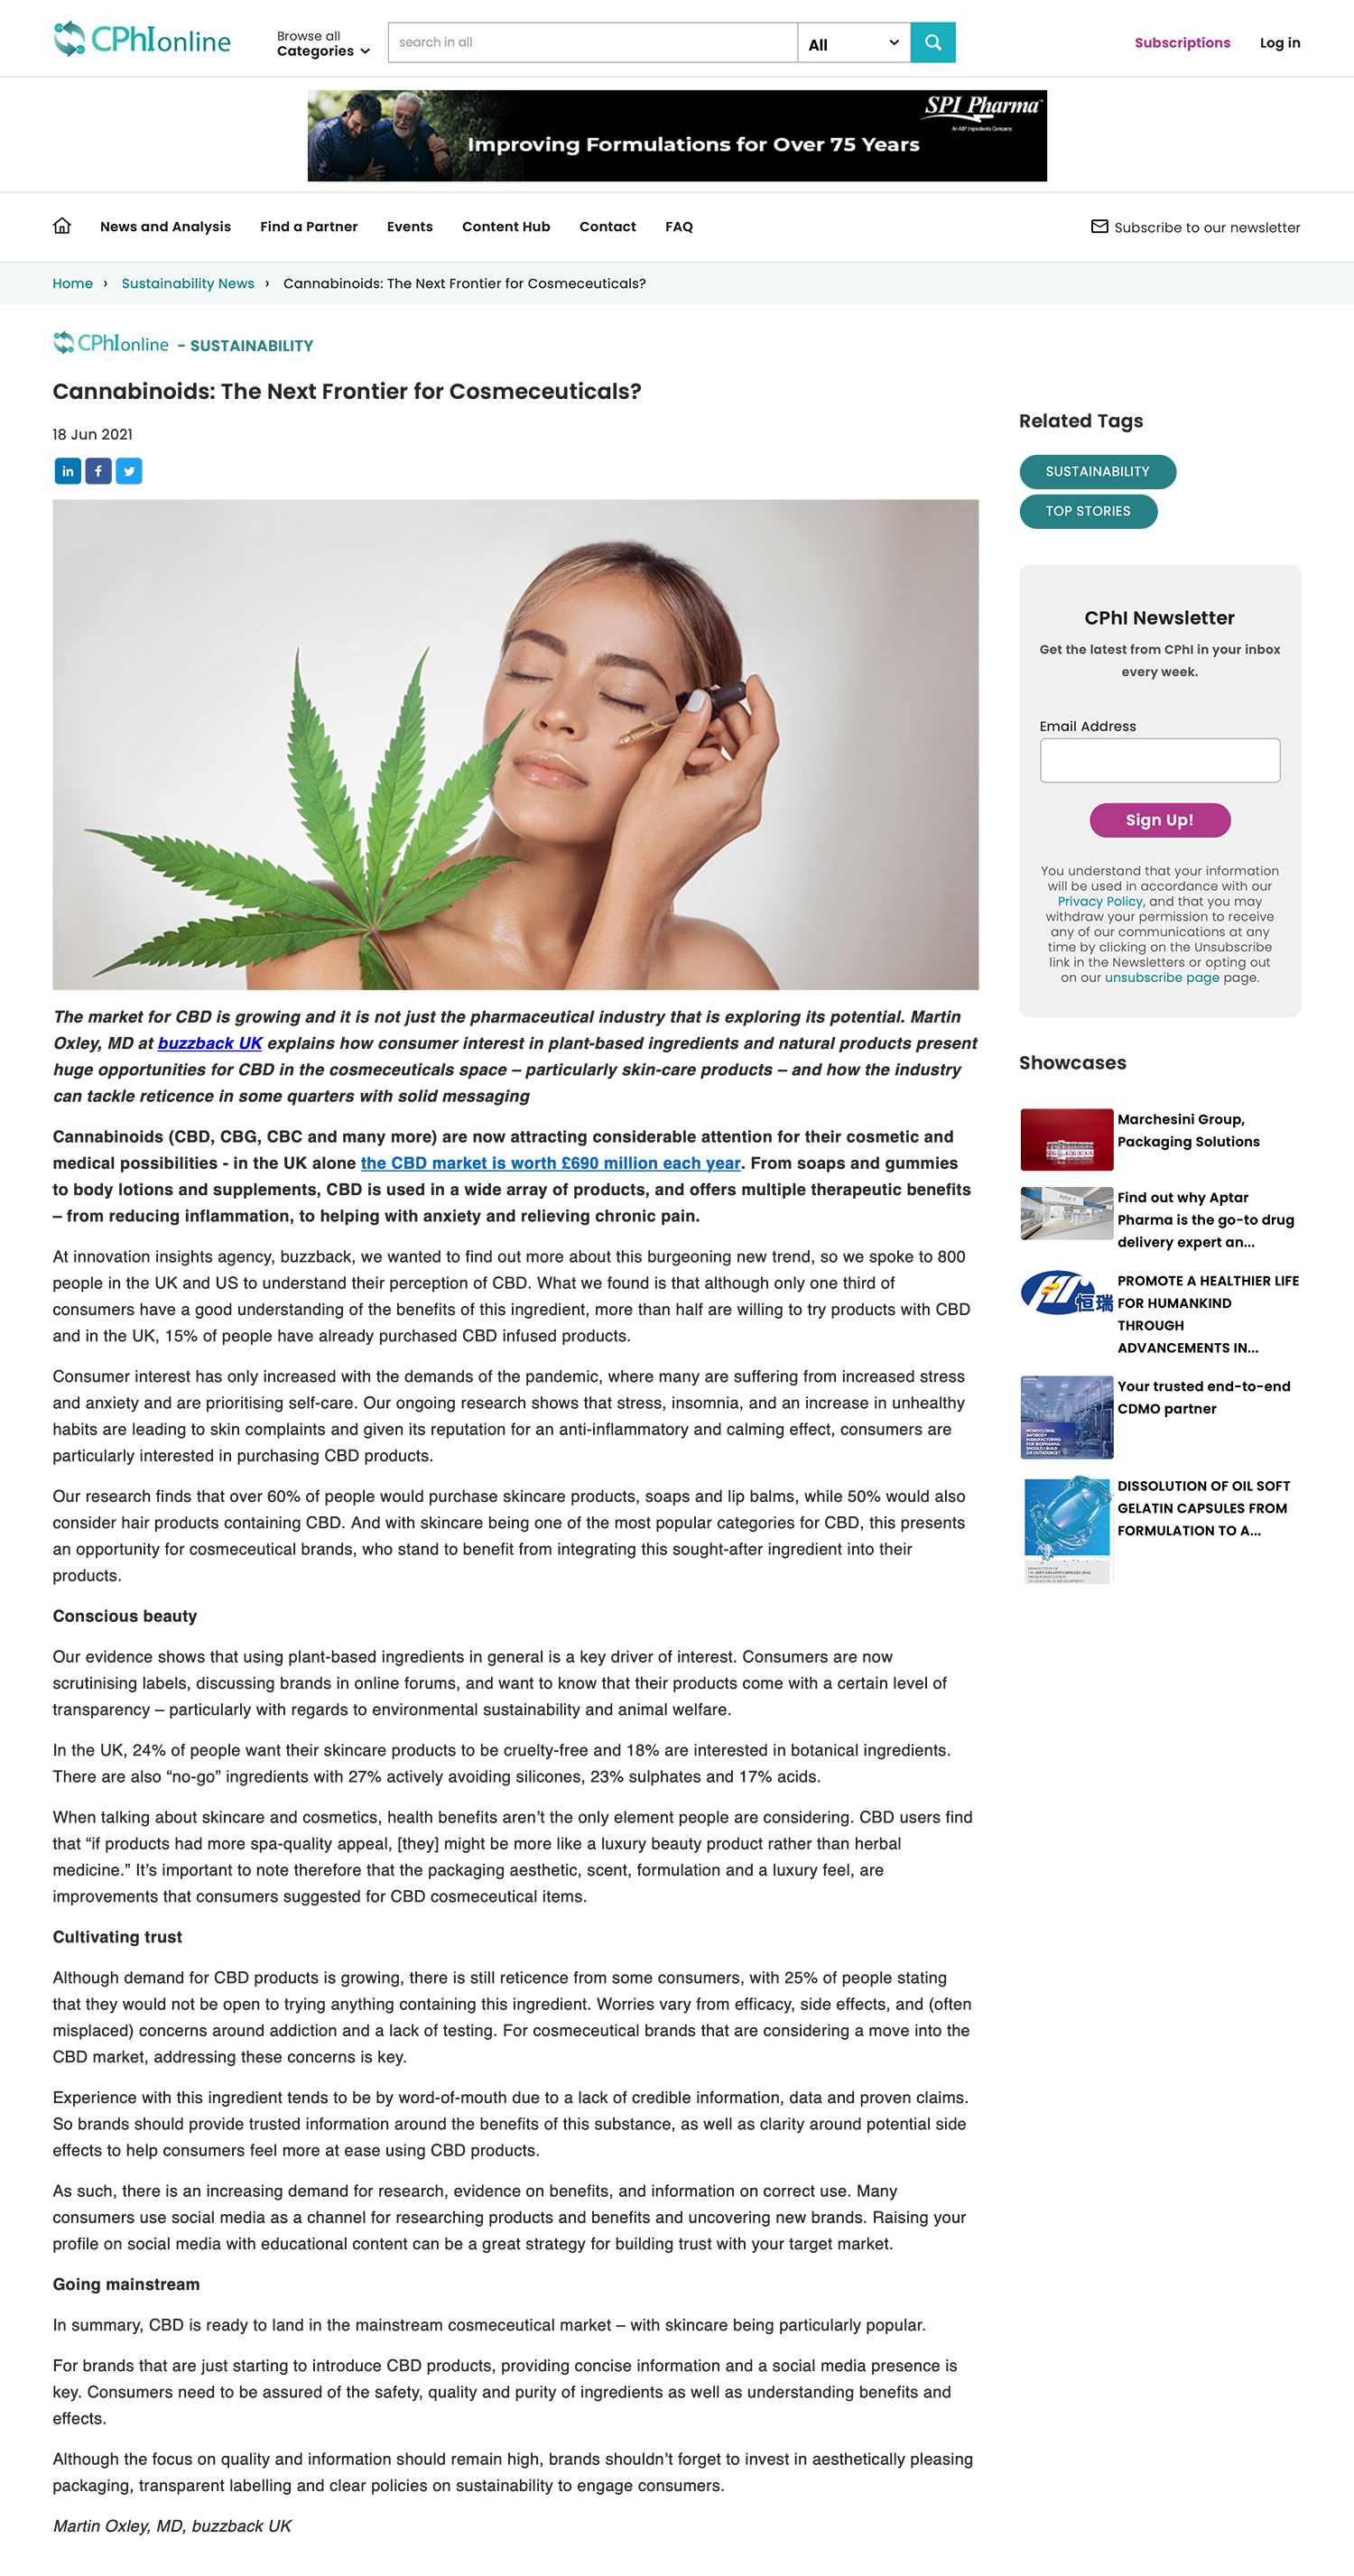 Cannabinoids-The-Next-Frontier-for-Cosmeceuticals